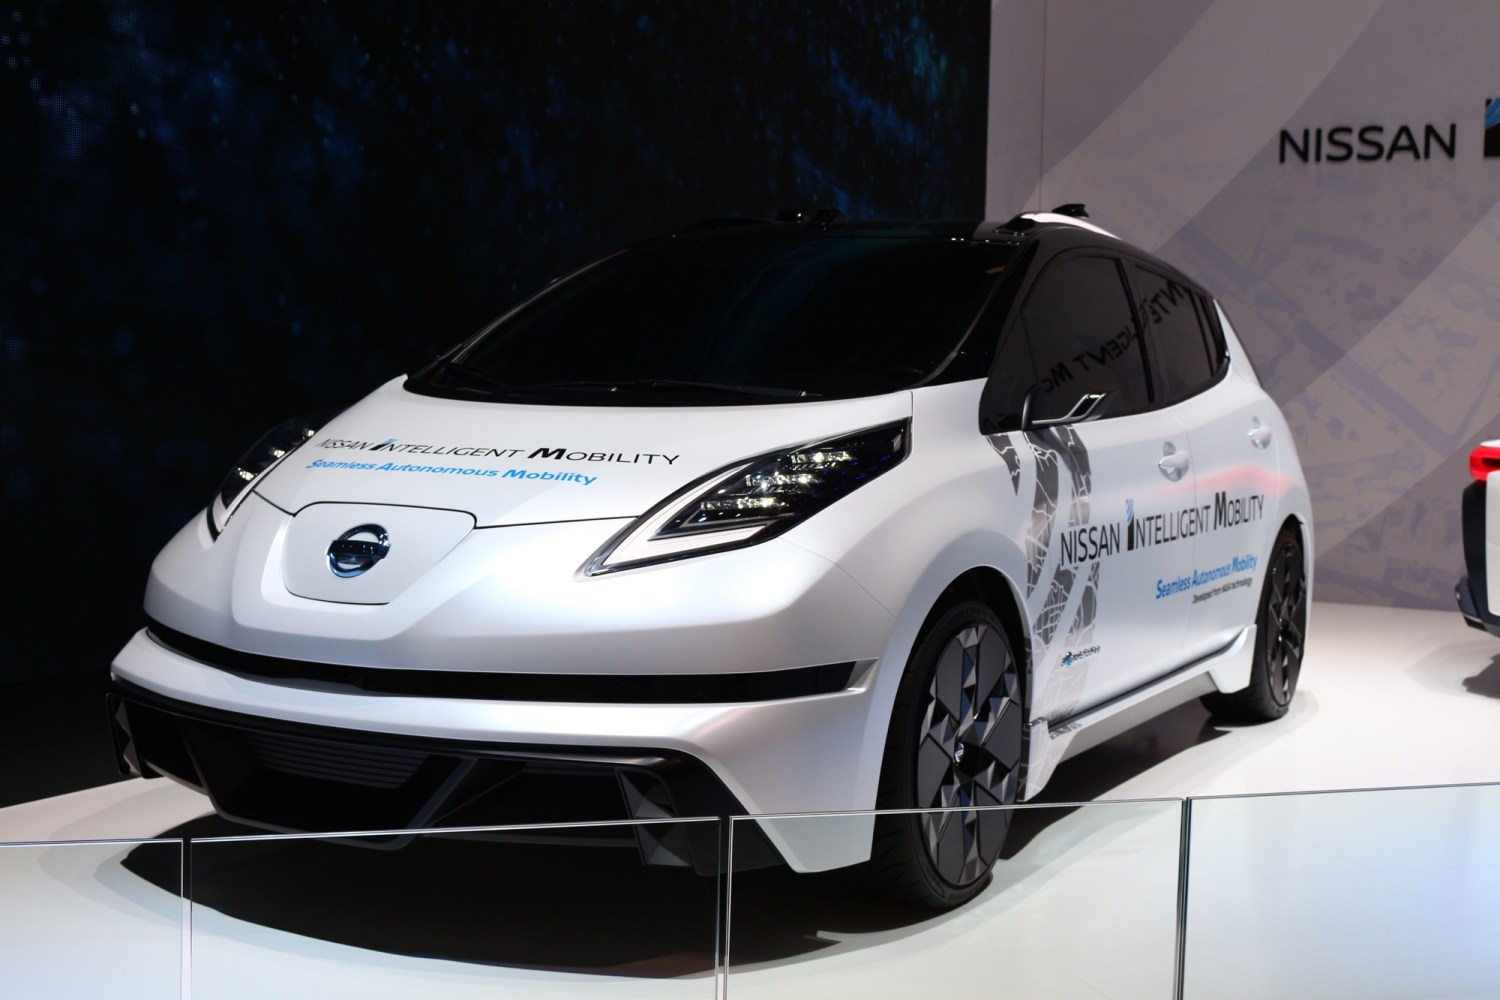 Nissan Intelligent Mobility Concept